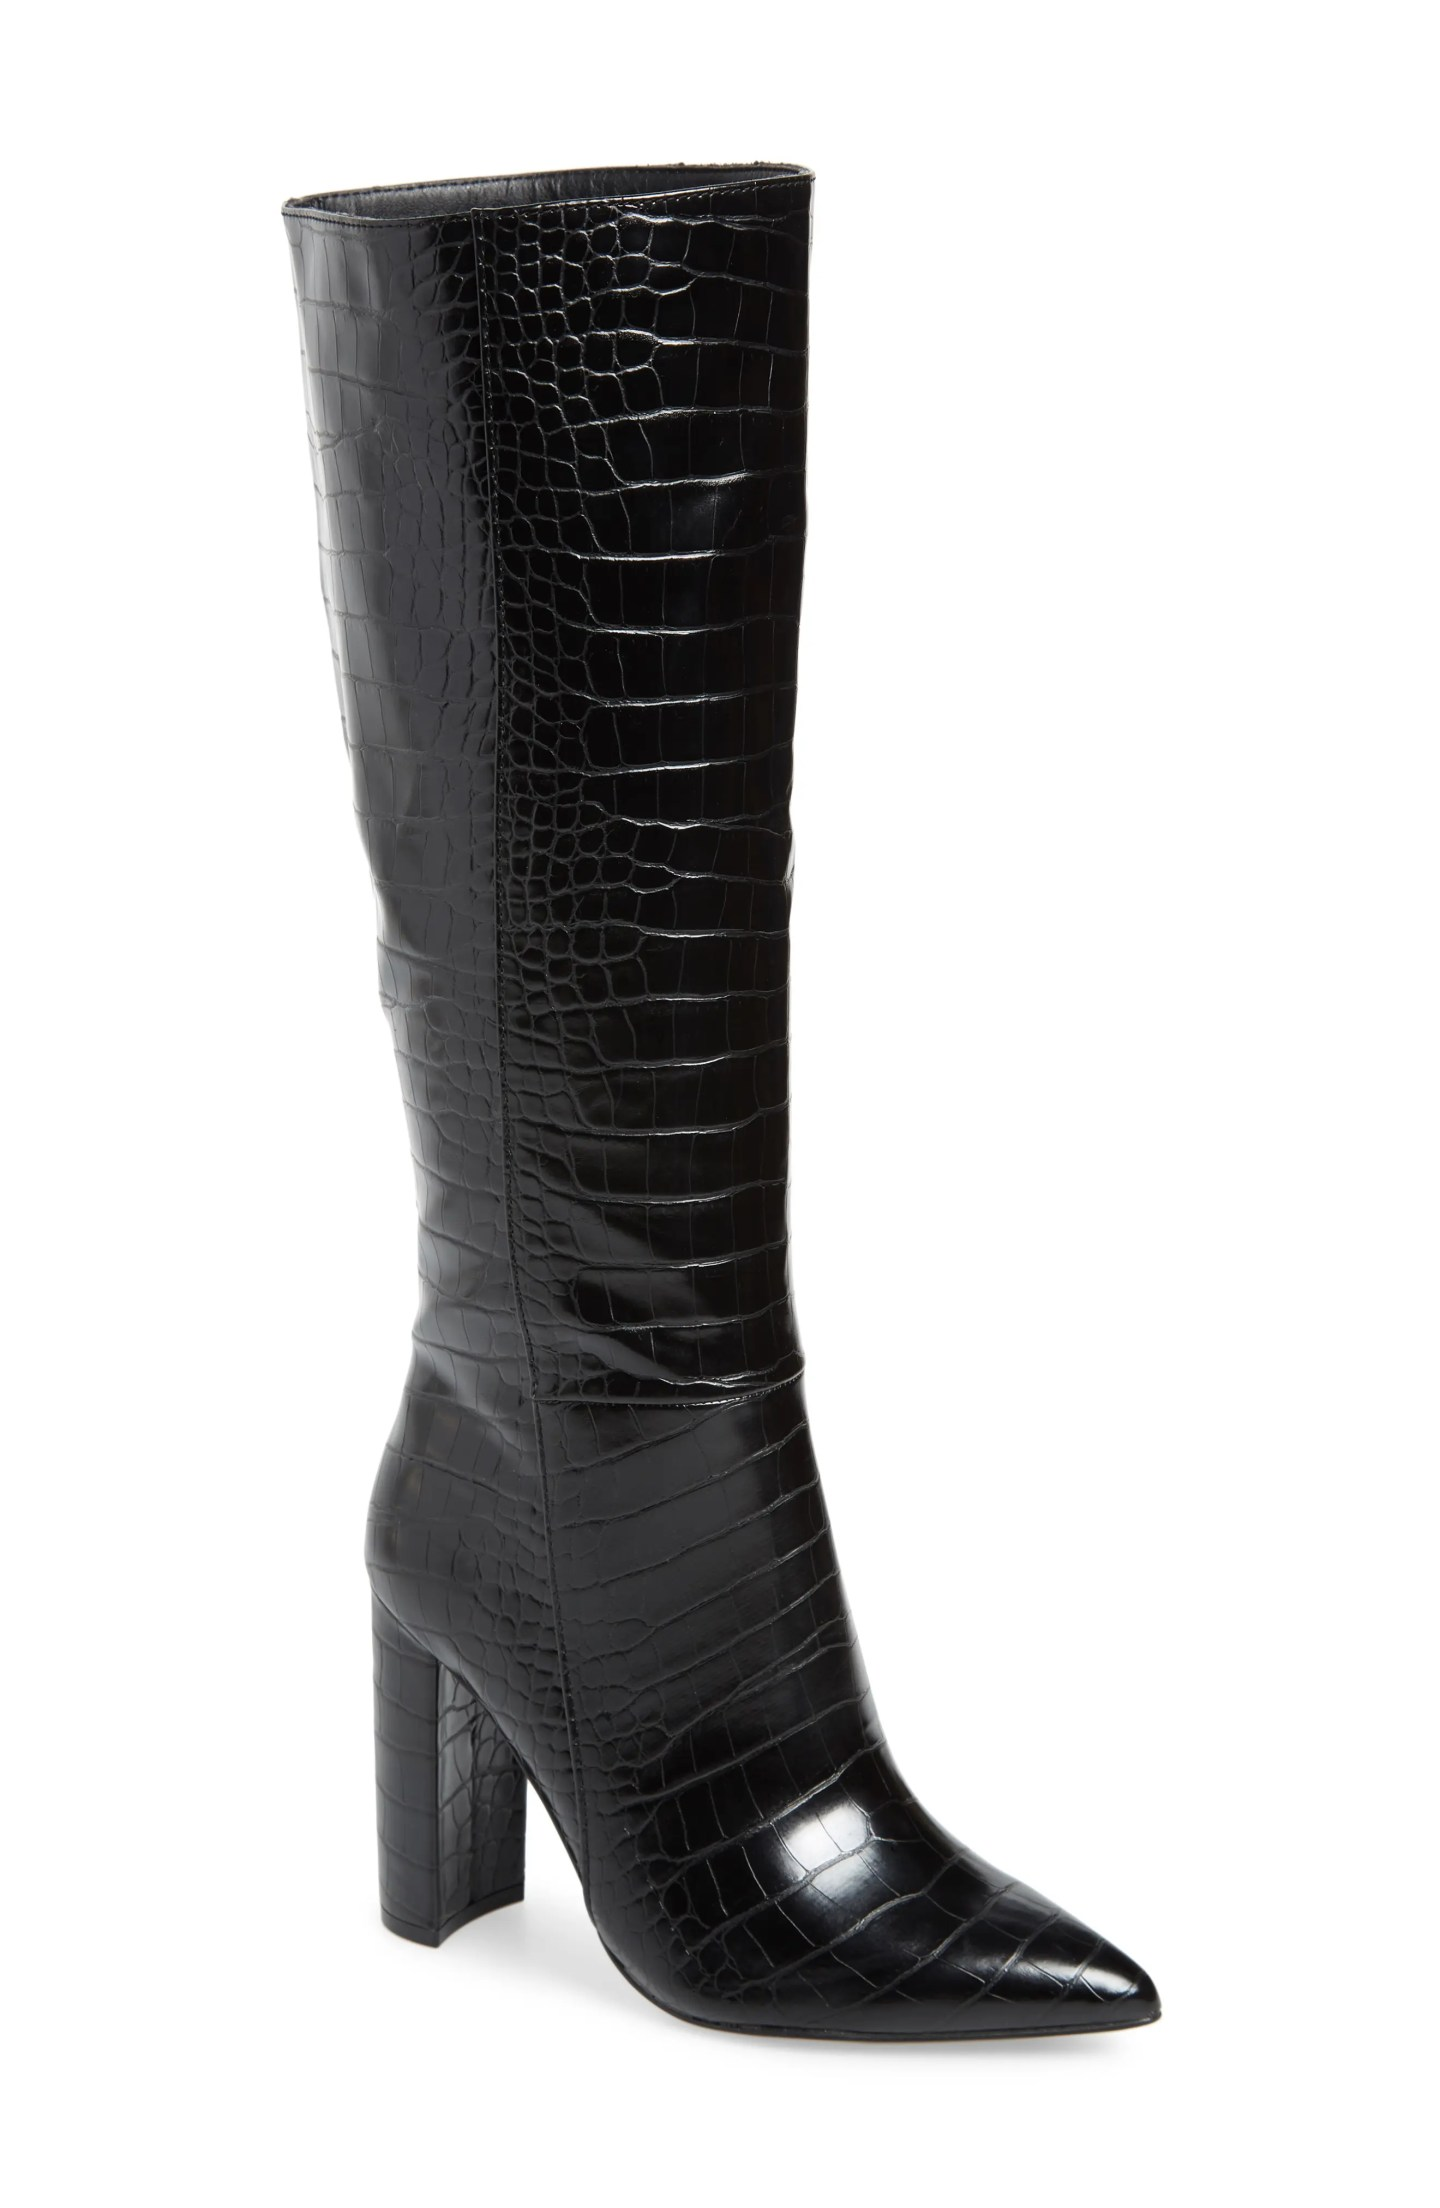 STEVE MADDEN Triumph Knee High Boot, Main, color, BLACK CROCO